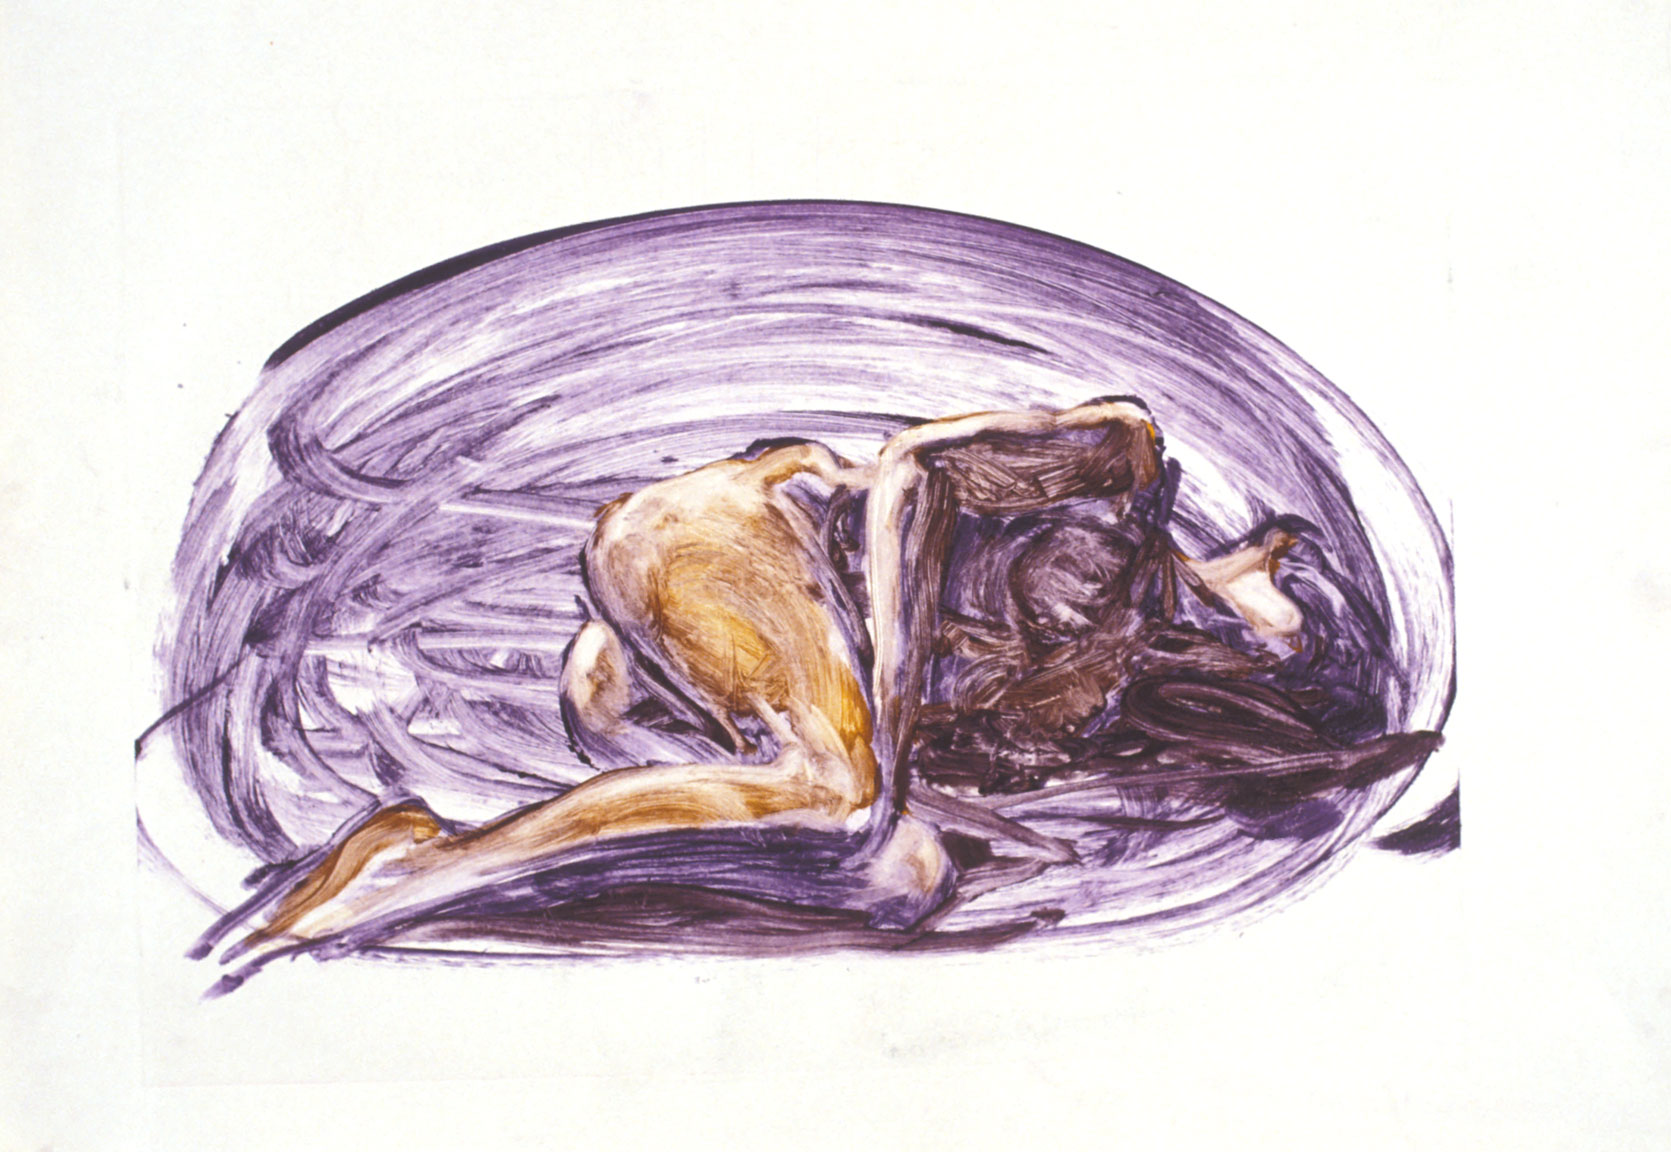 Edward Weston Figure, 1985. monotype on Paper 21 x 30 inches